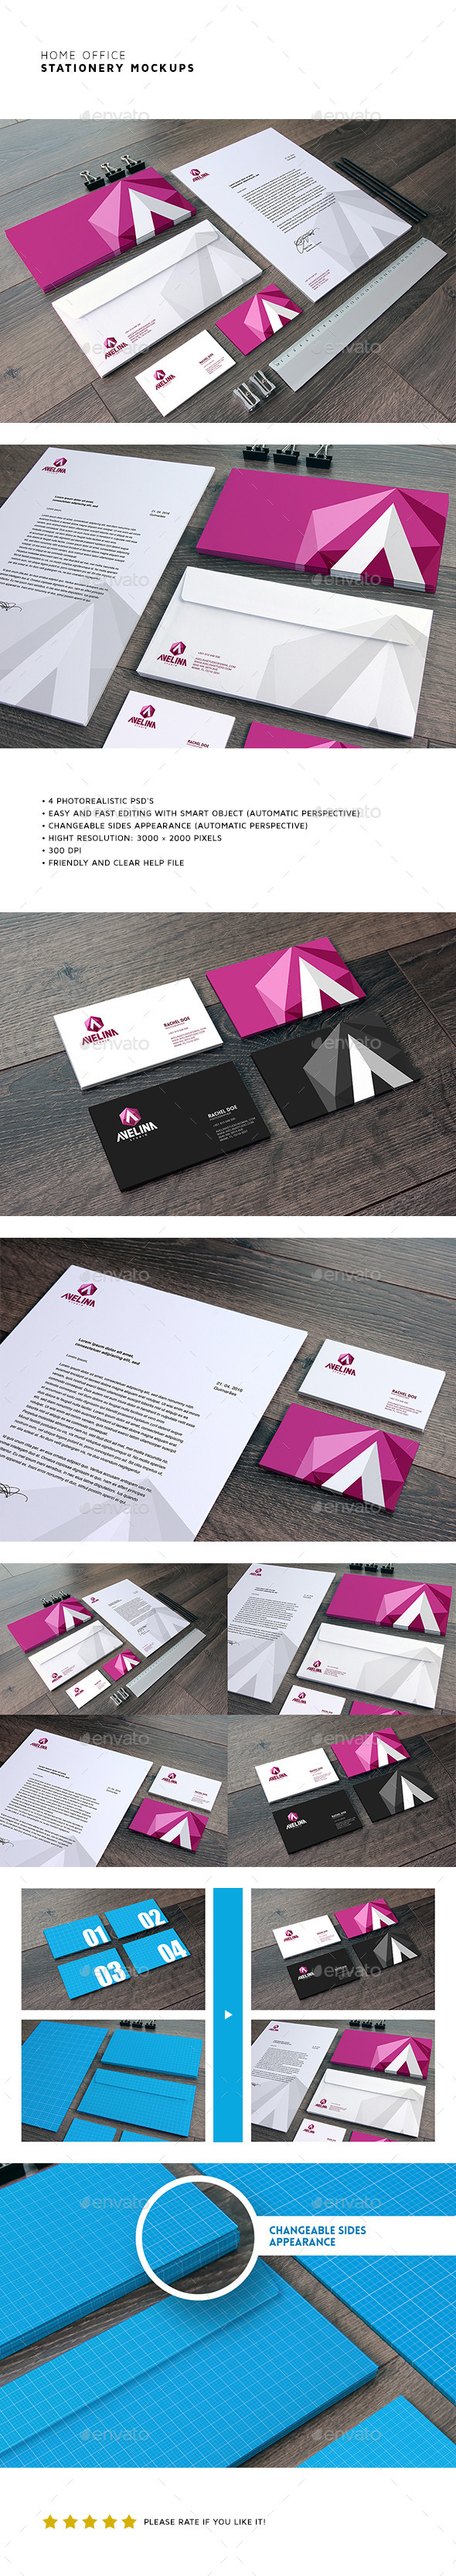 File Folder Mockup (Stationery)